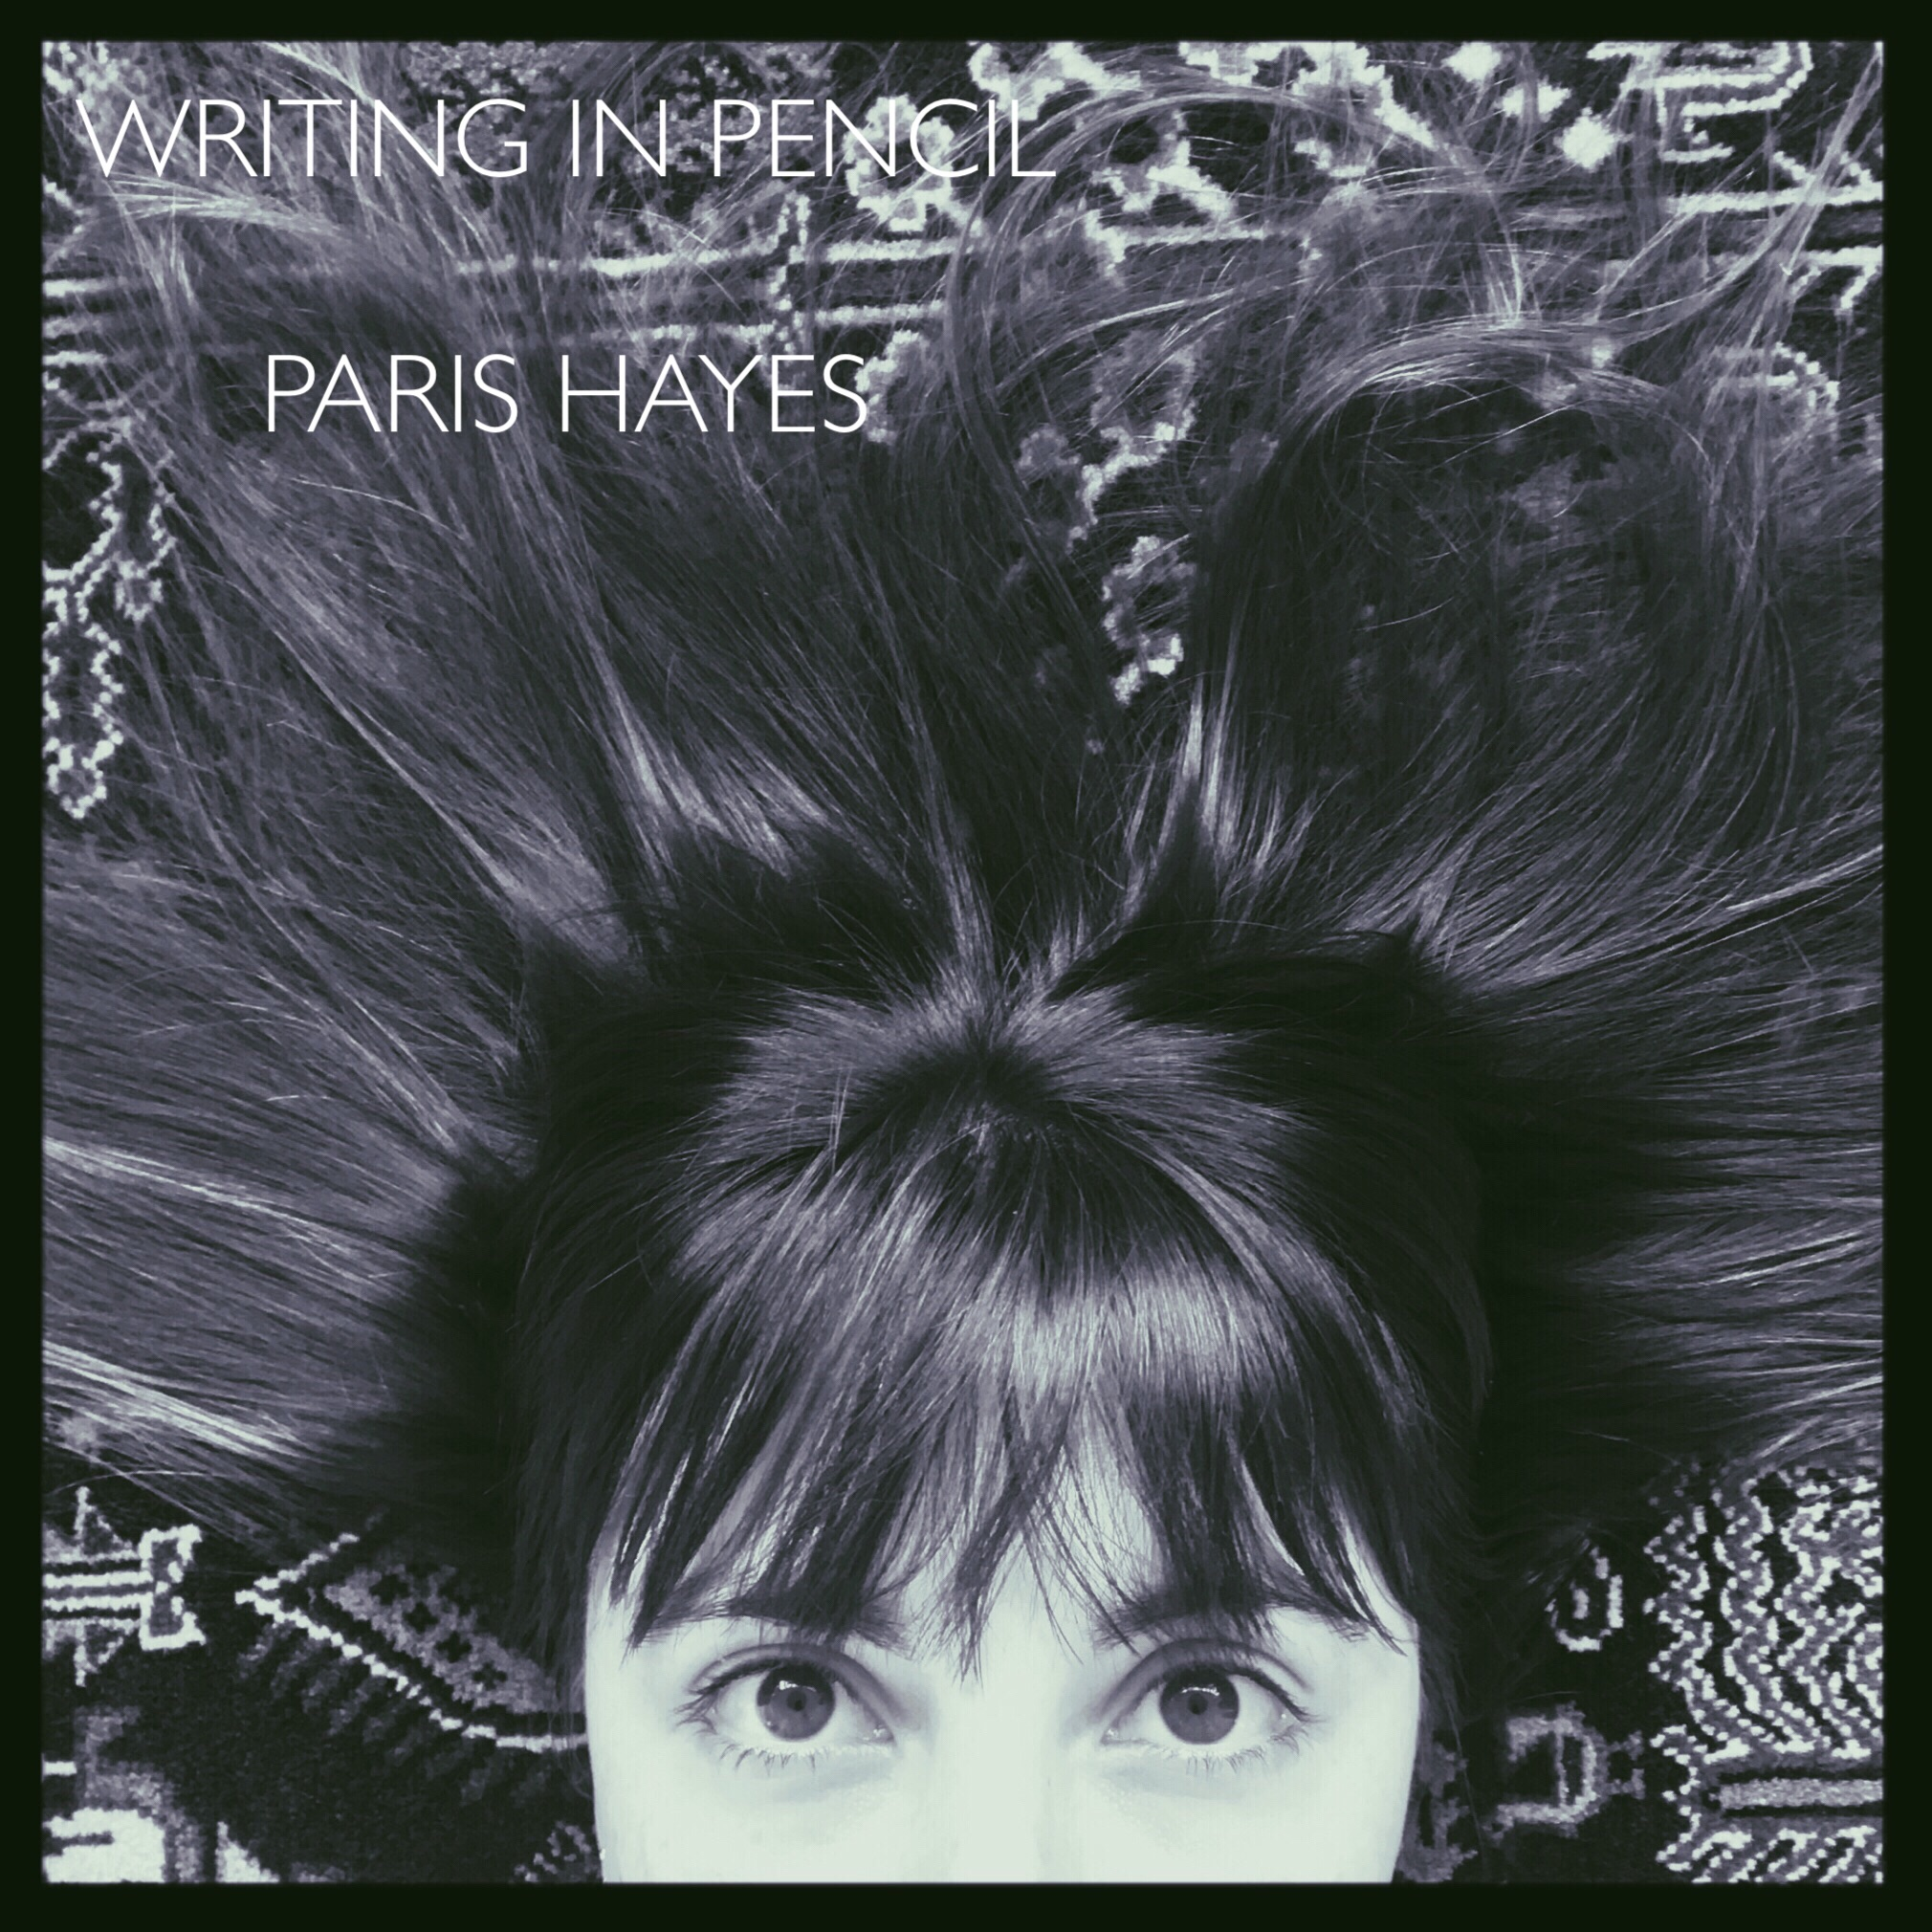 Writing in Pencil - Vocals: Paris HayesKeyboard: Bonnie HayesGuitar: Colin HayesBass: Lily BurnsDrums: Kevin HayesMastered by Stephen Hart© Paris Hayes Music